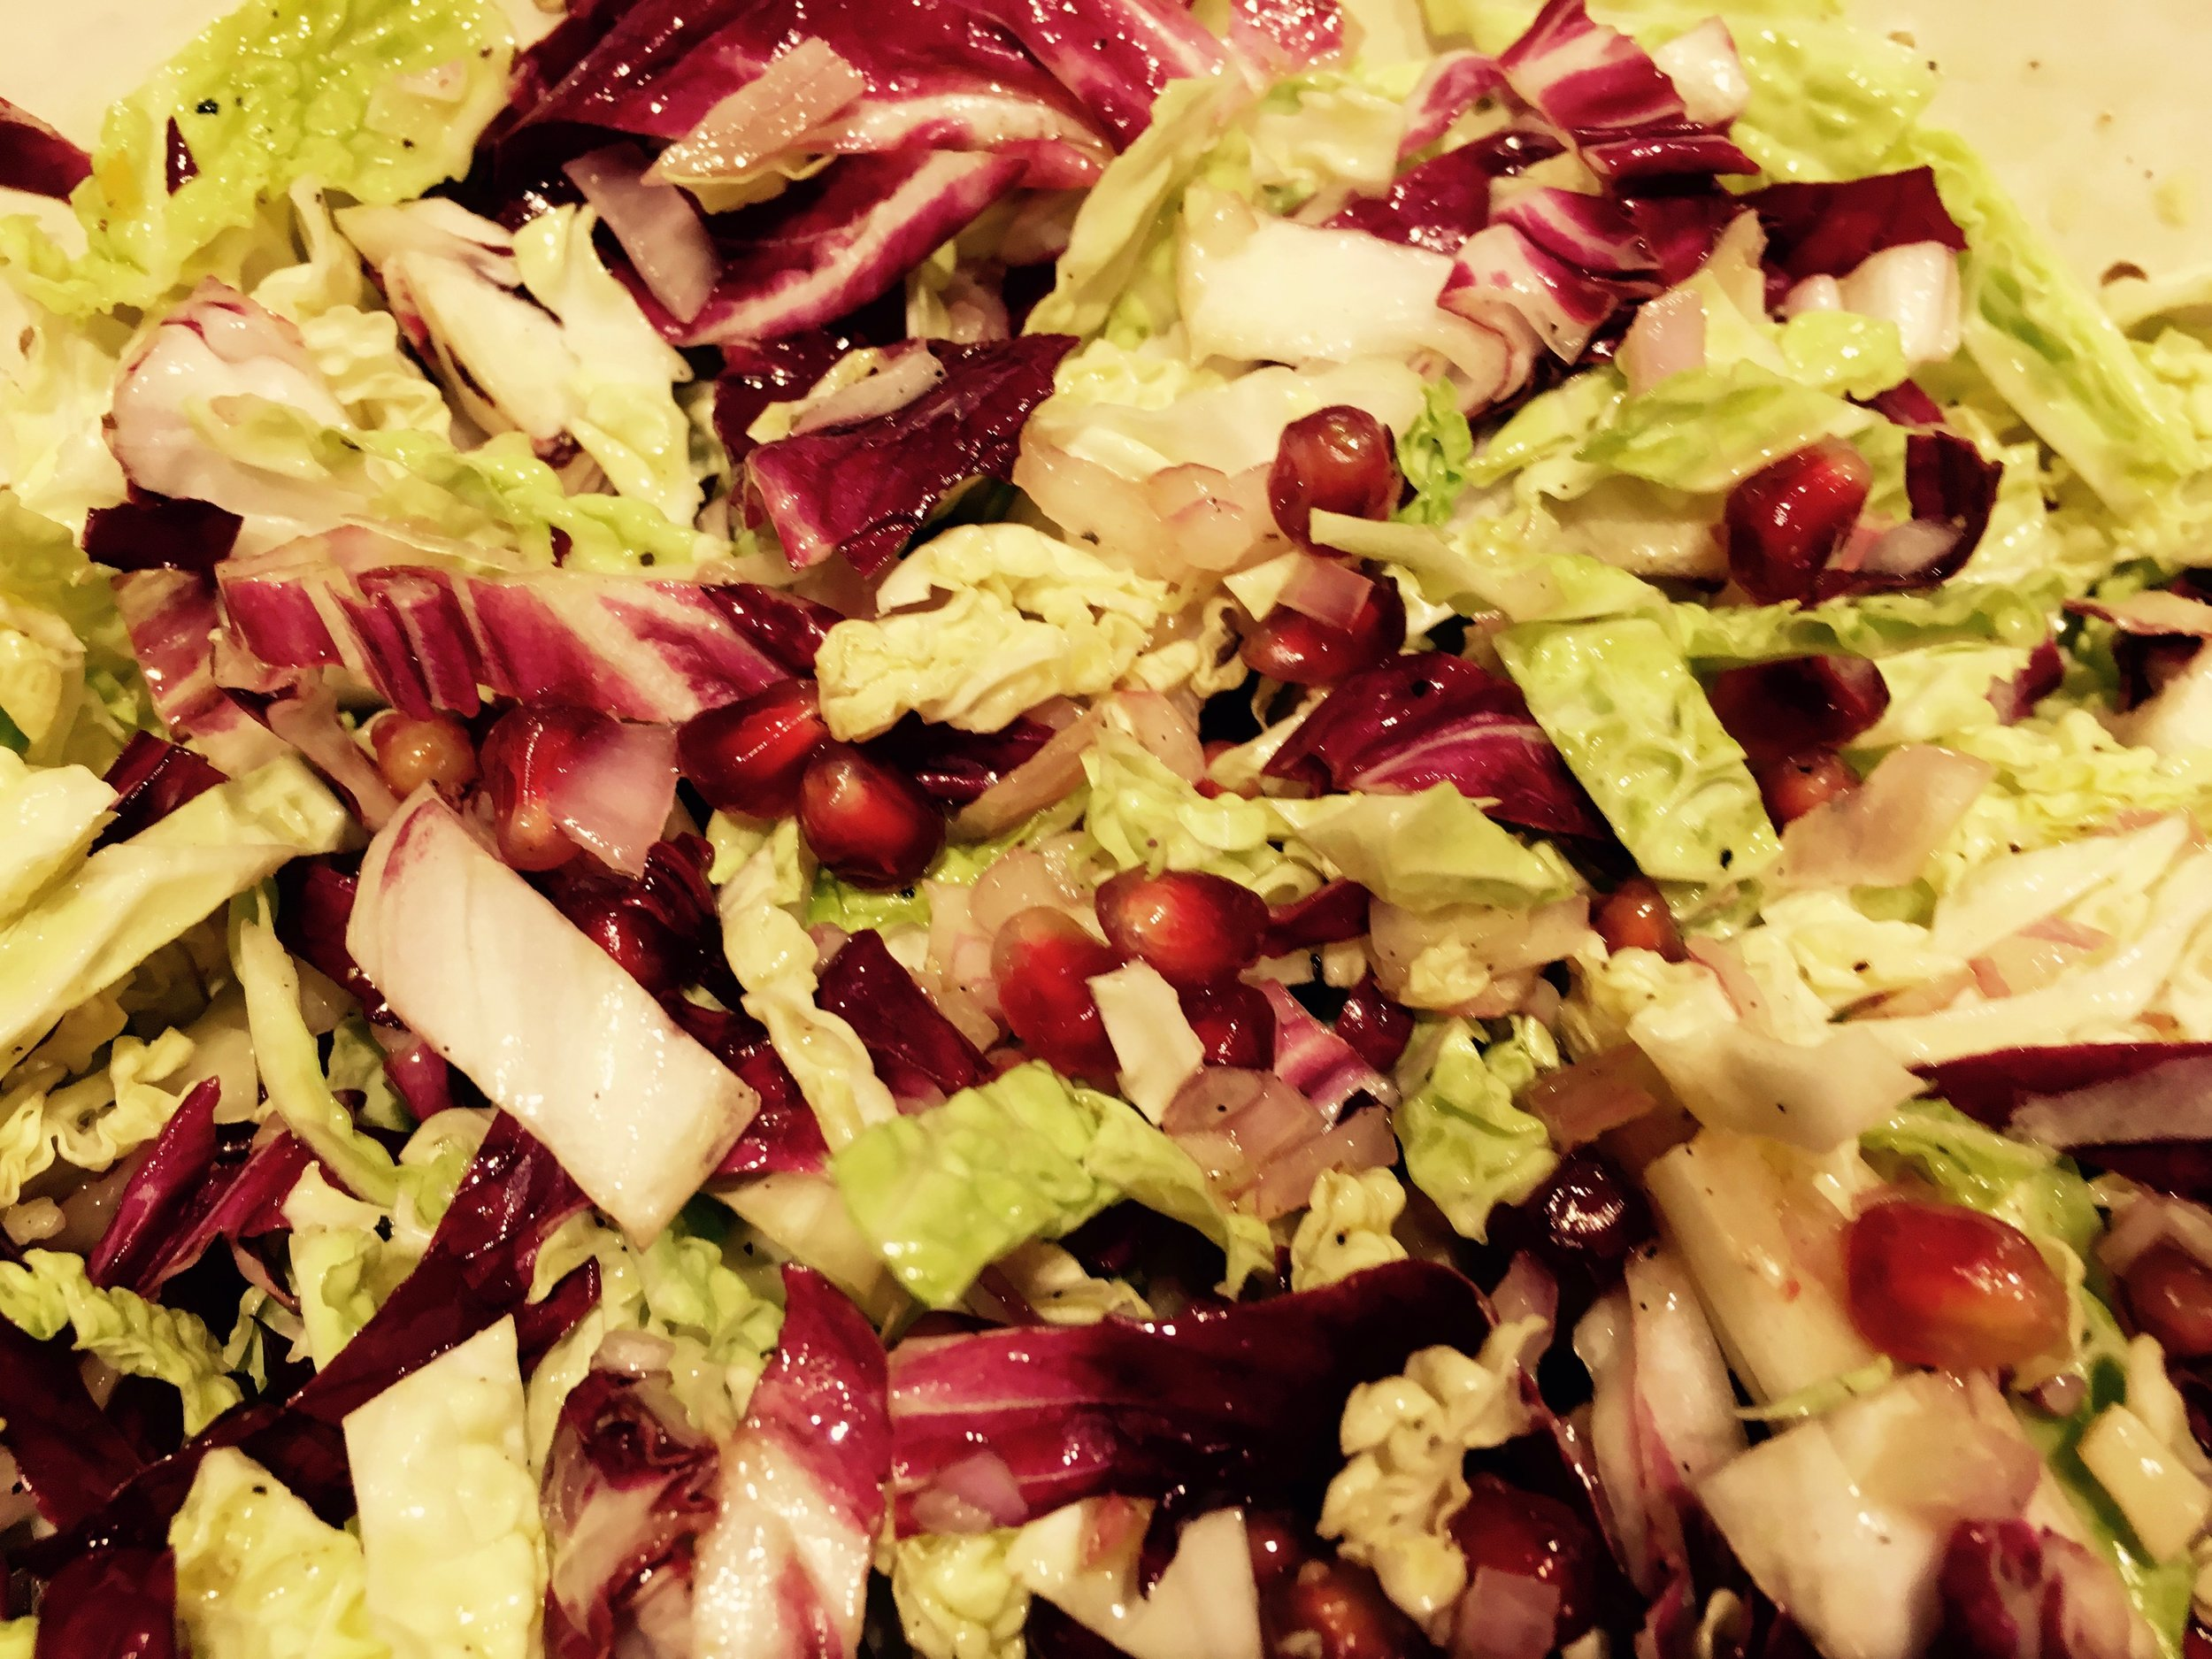 Salad of Asian Napa cabbage, Italian radicchio and North African pomegranates